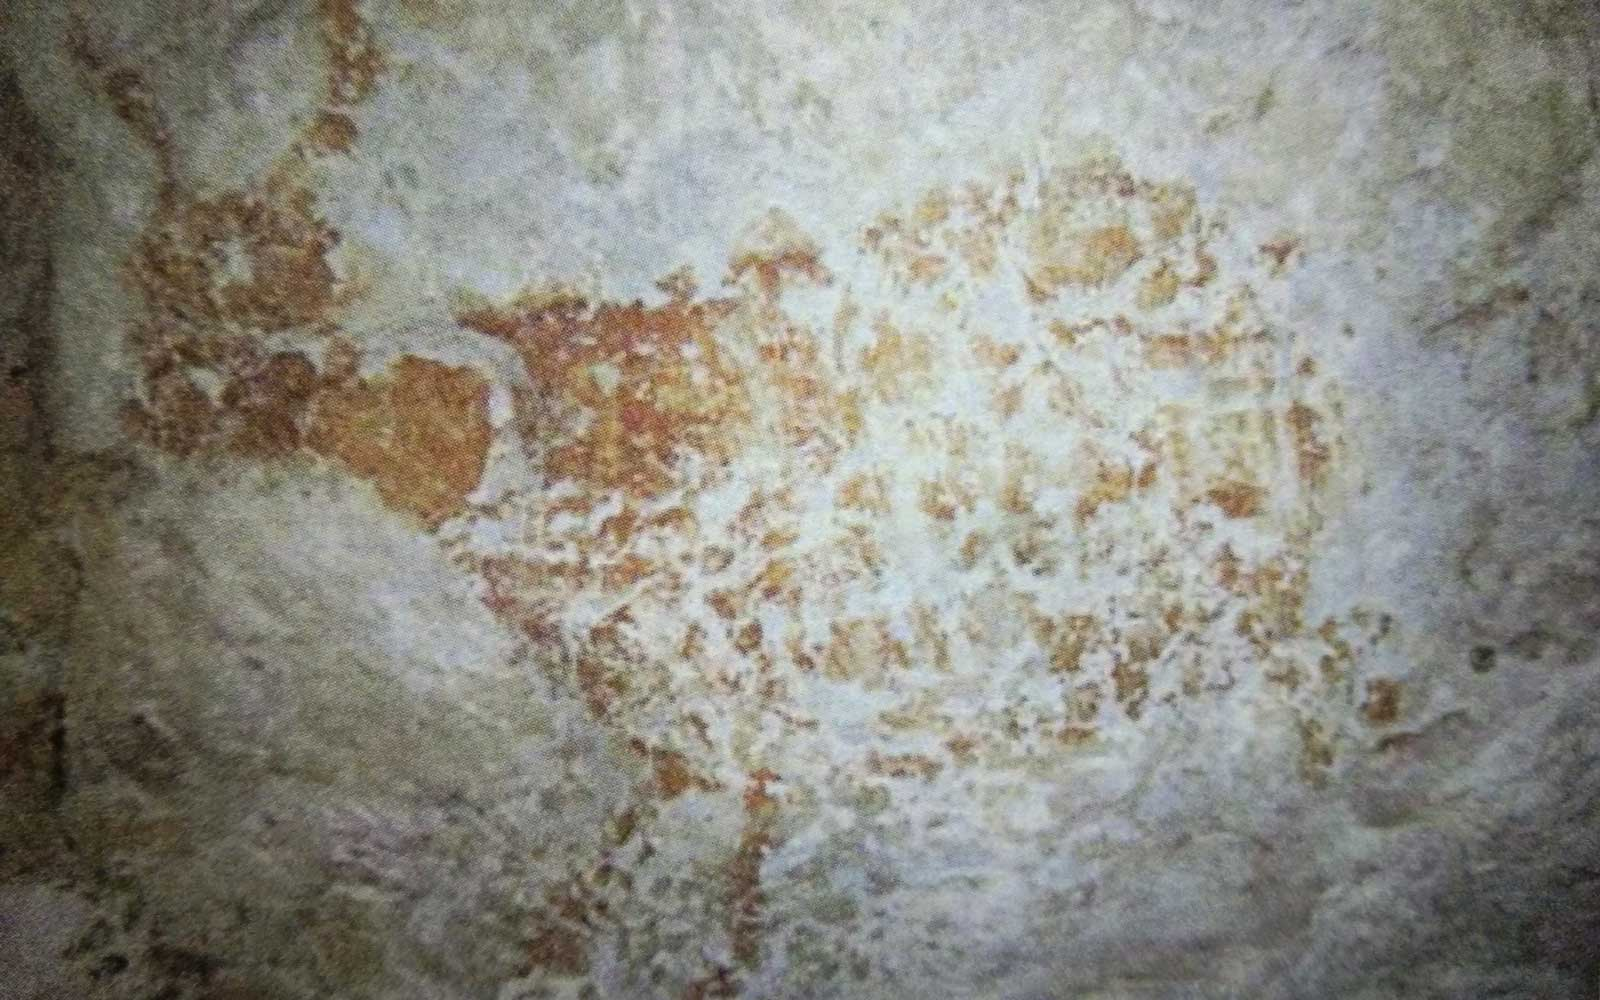 World's oldest rock art discovered in Borneo, Indonesia